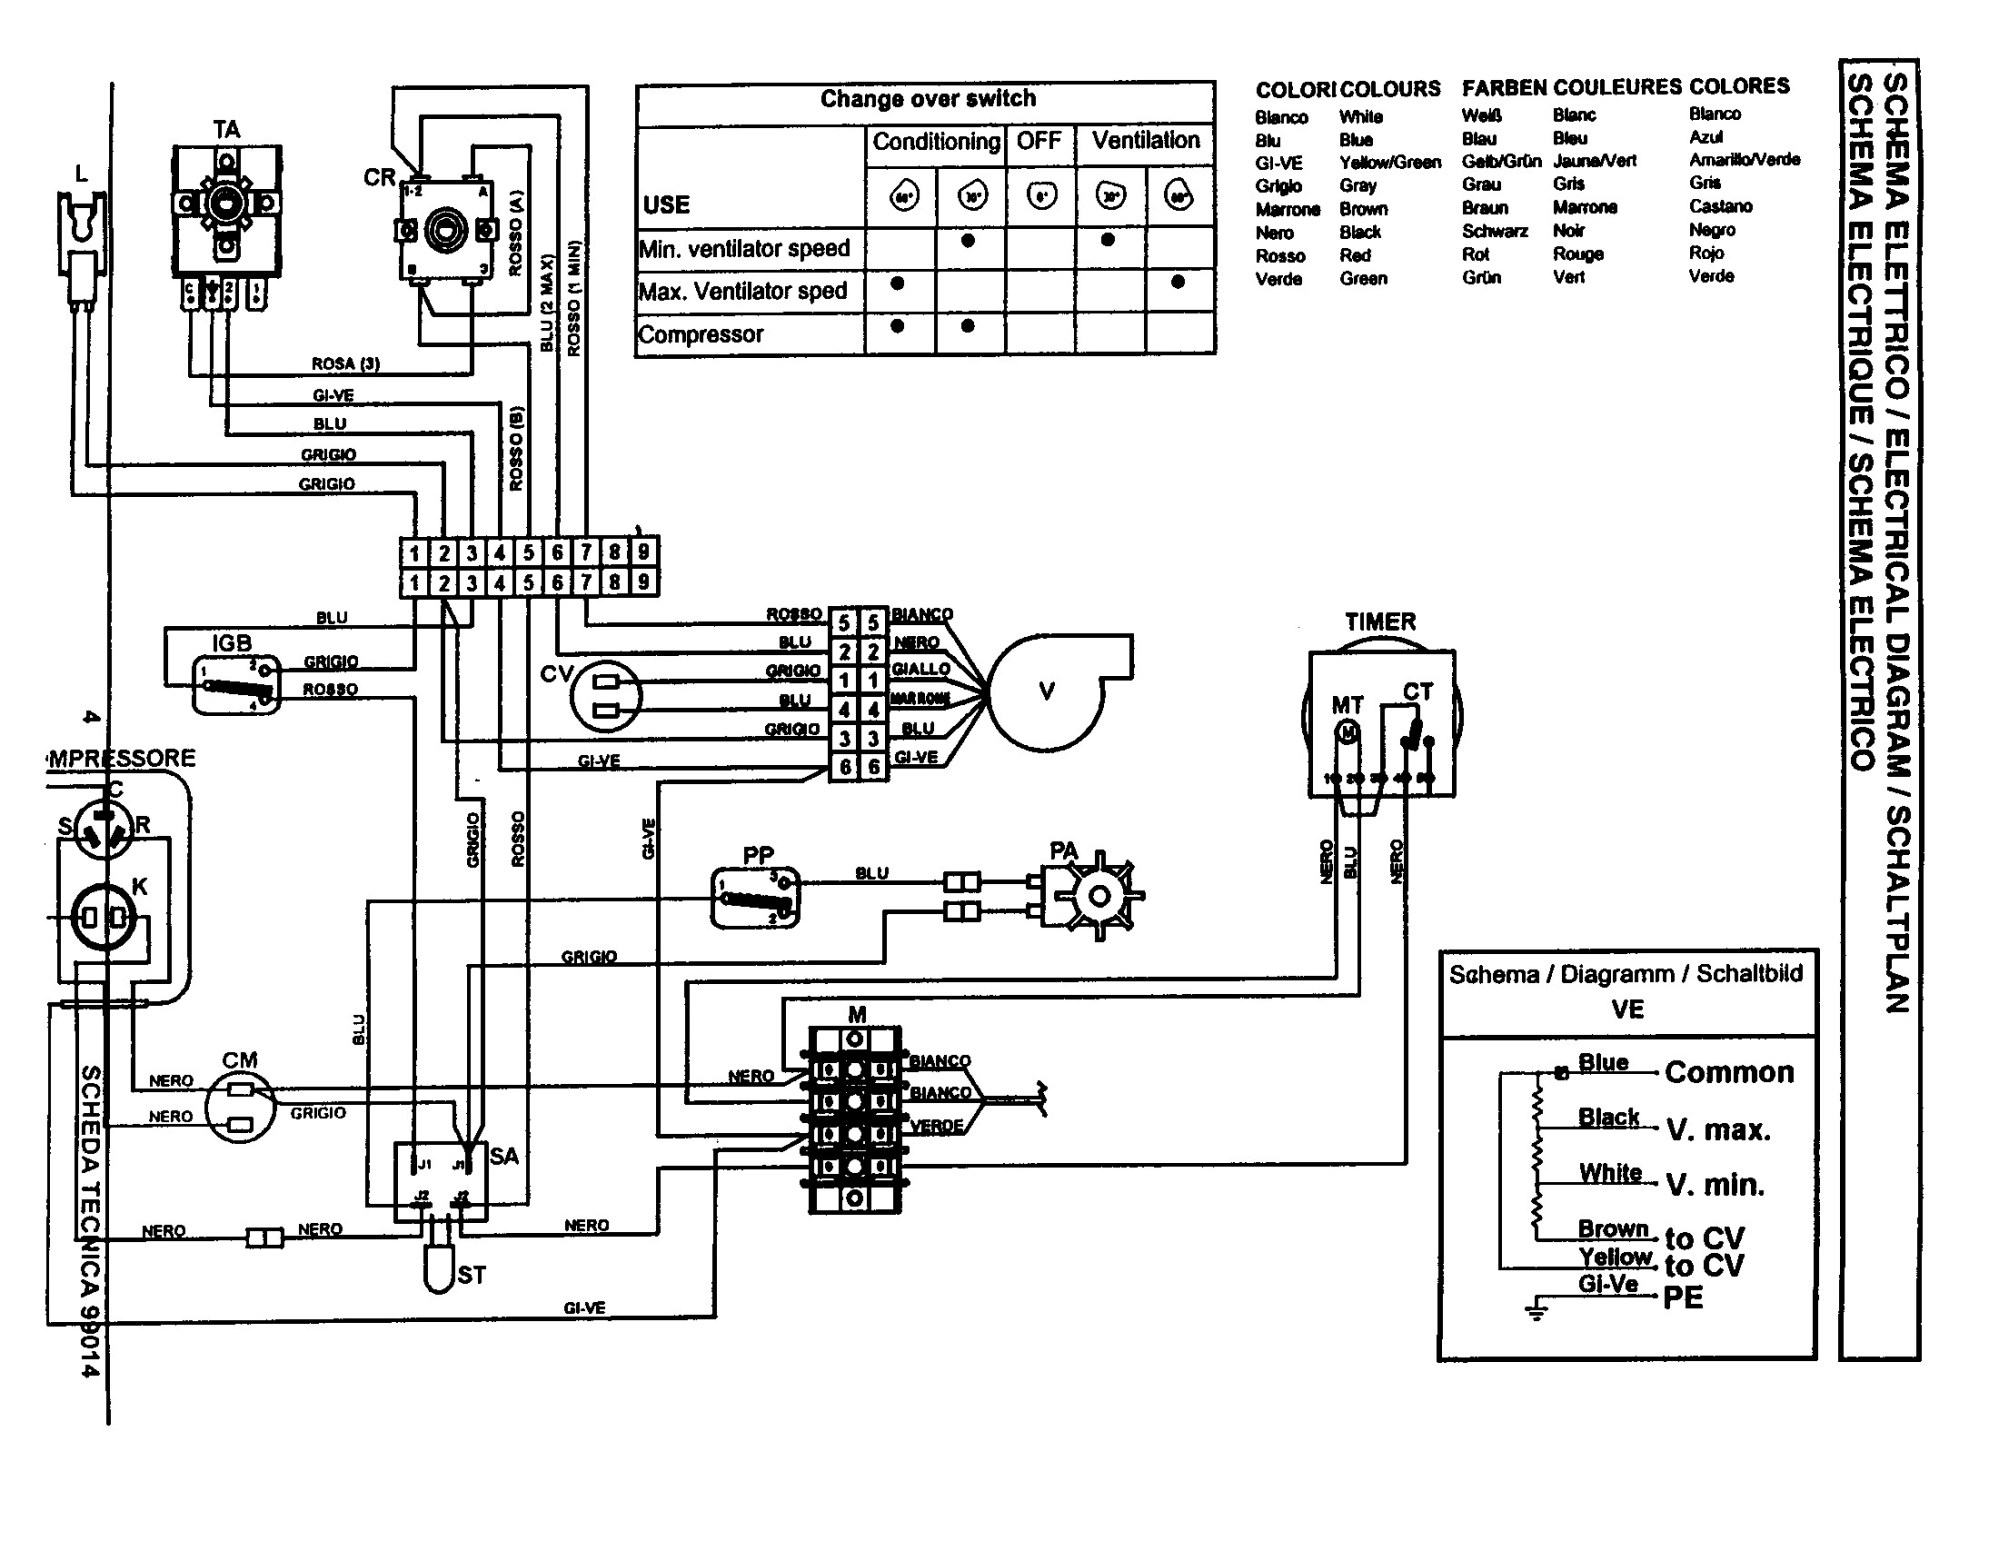 hight resolution of thermostat thermostat wiring diagram for air conditioner schematic goodman air conditioners wiring diagrams old carrier wiring